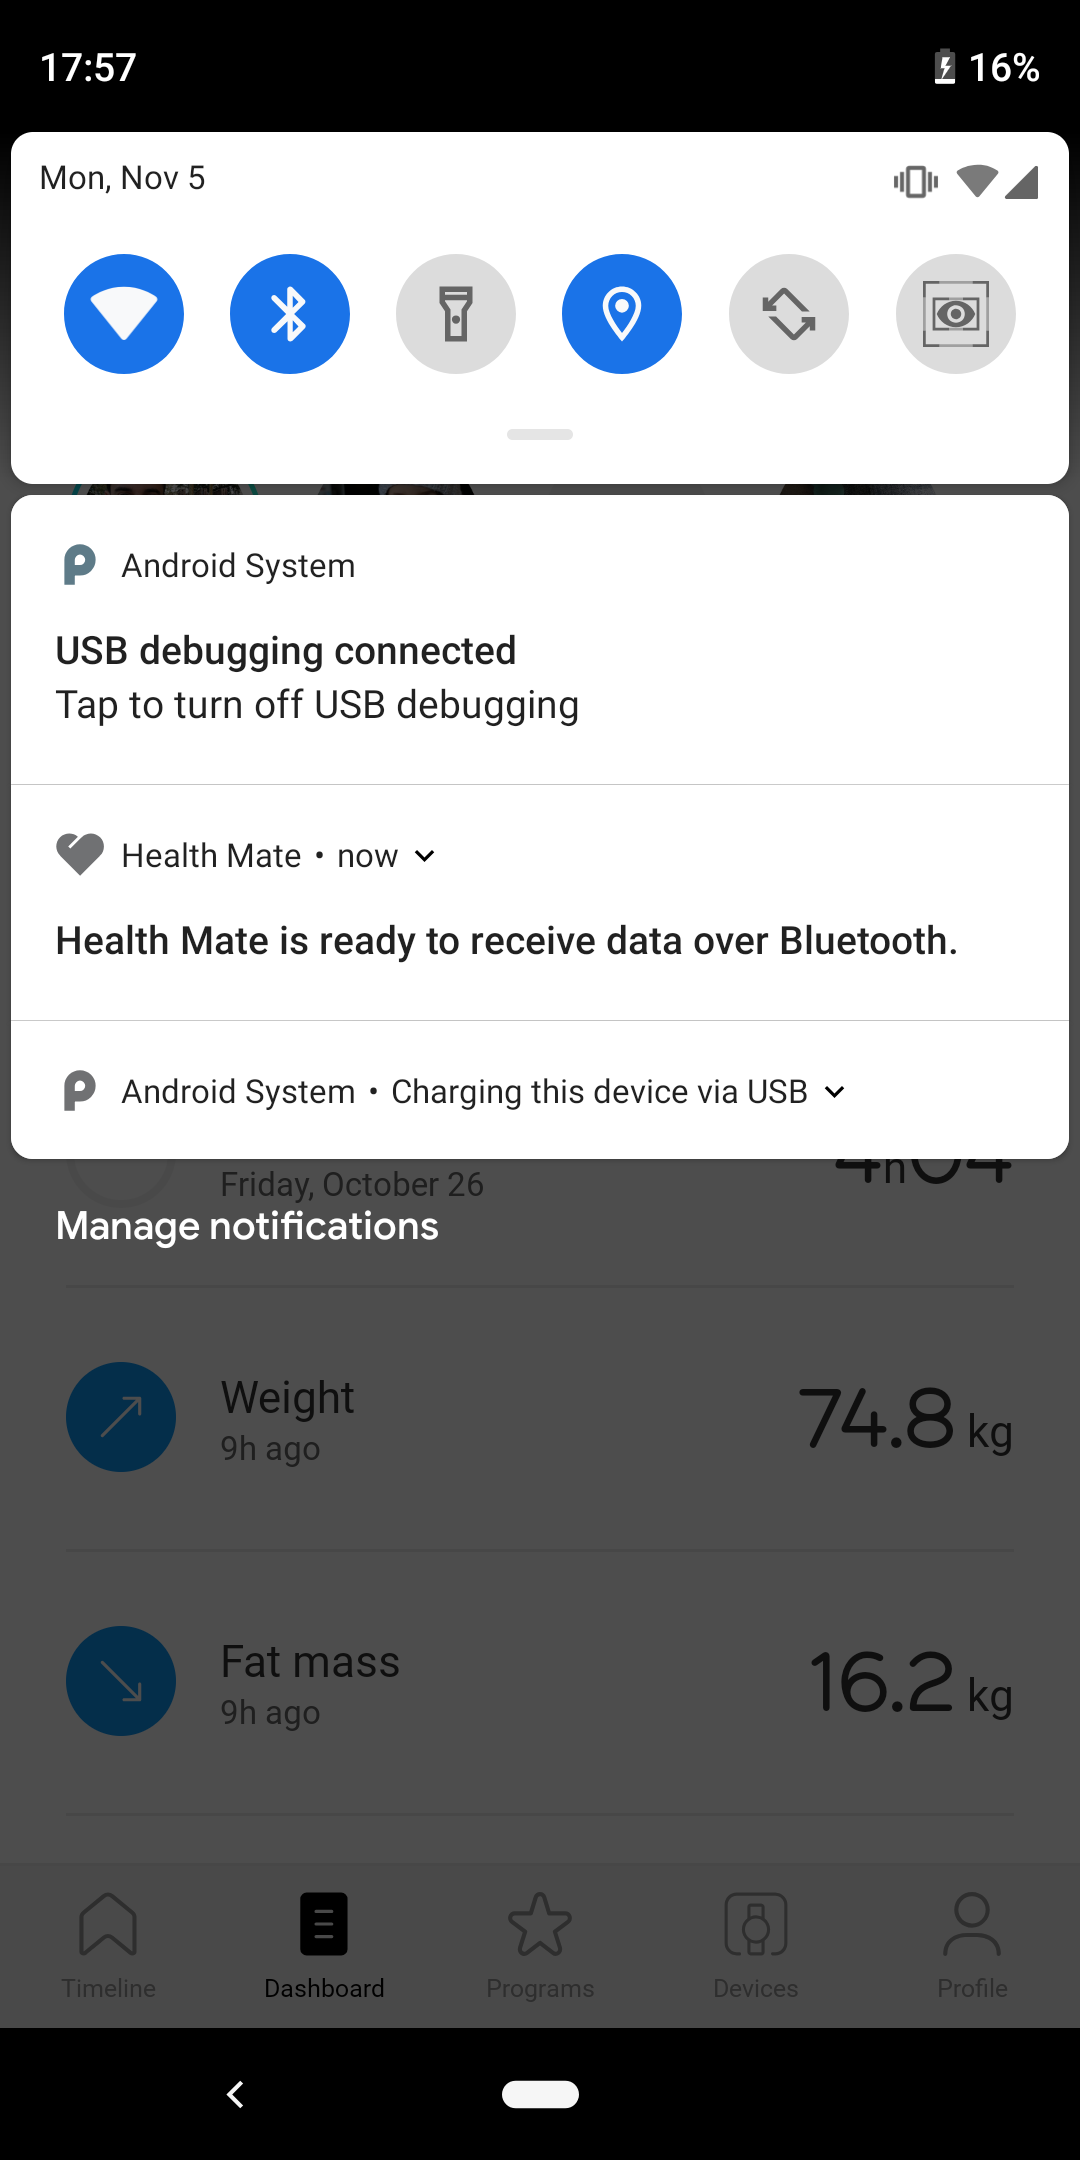 health-mate-notif-android.png